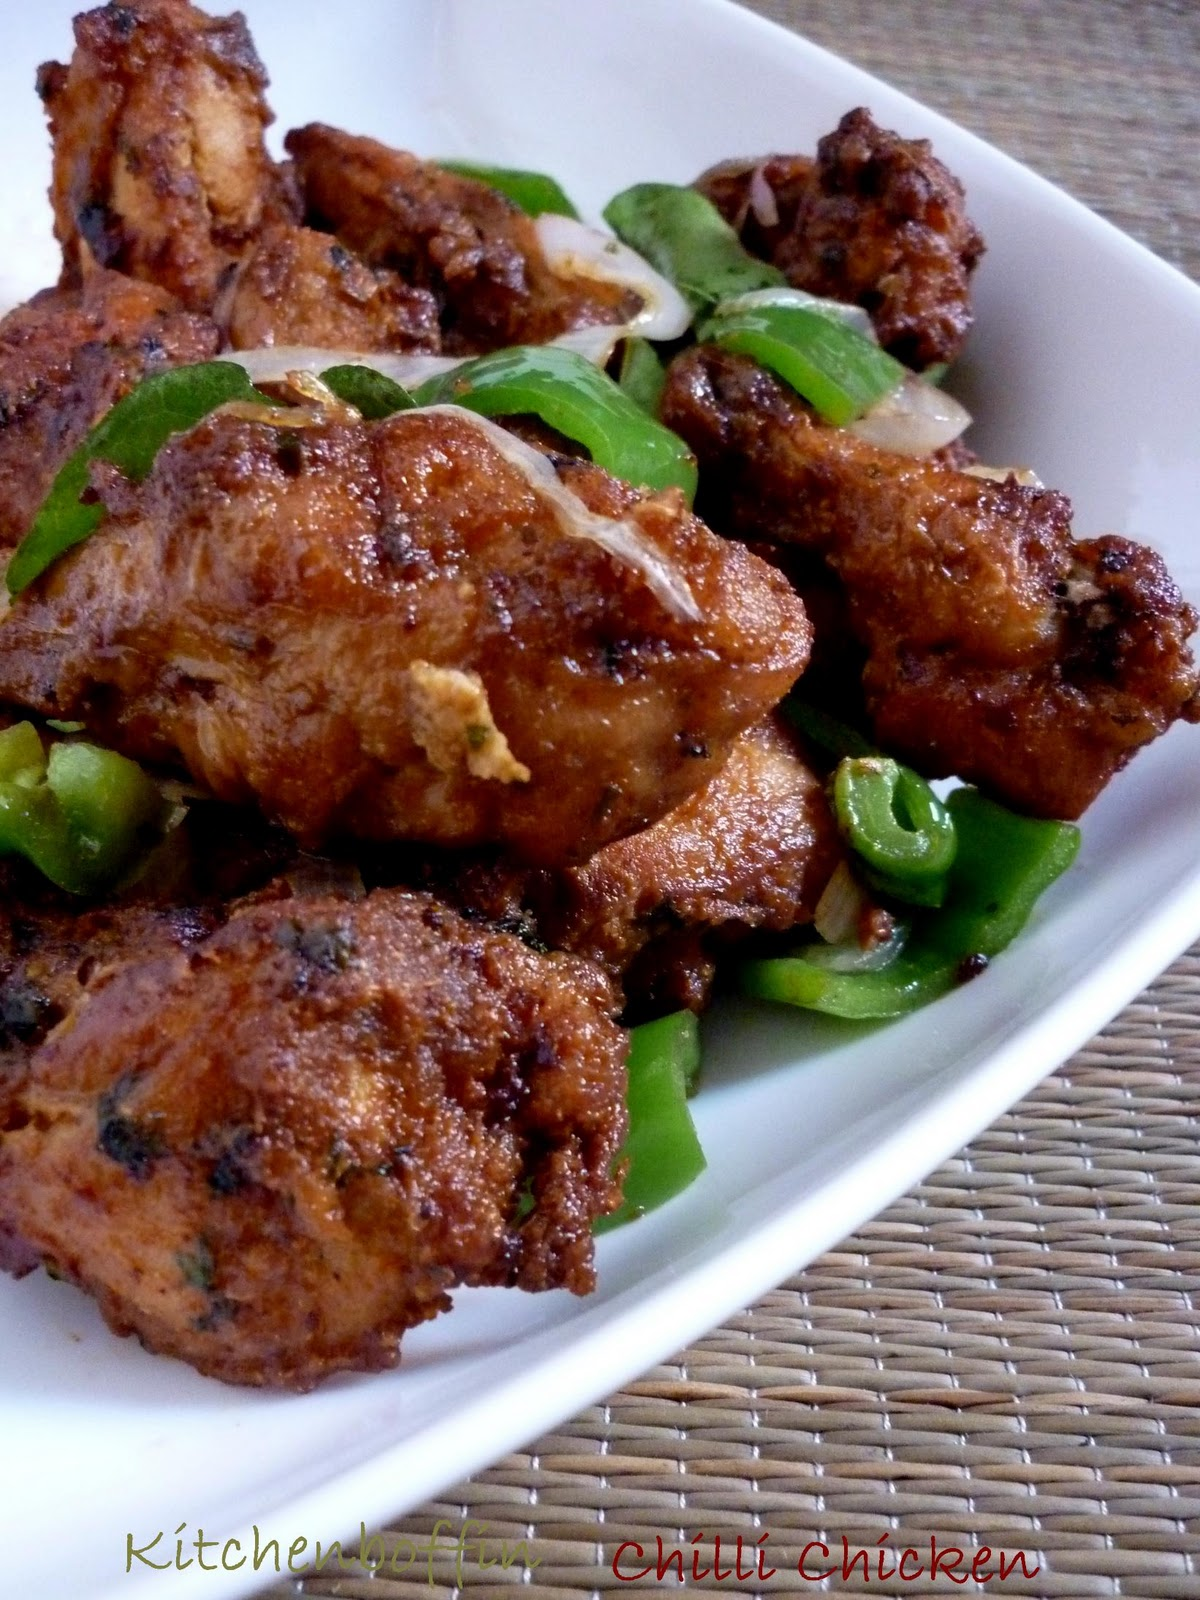 Kitchen Boffin: Chilli Chicken fry